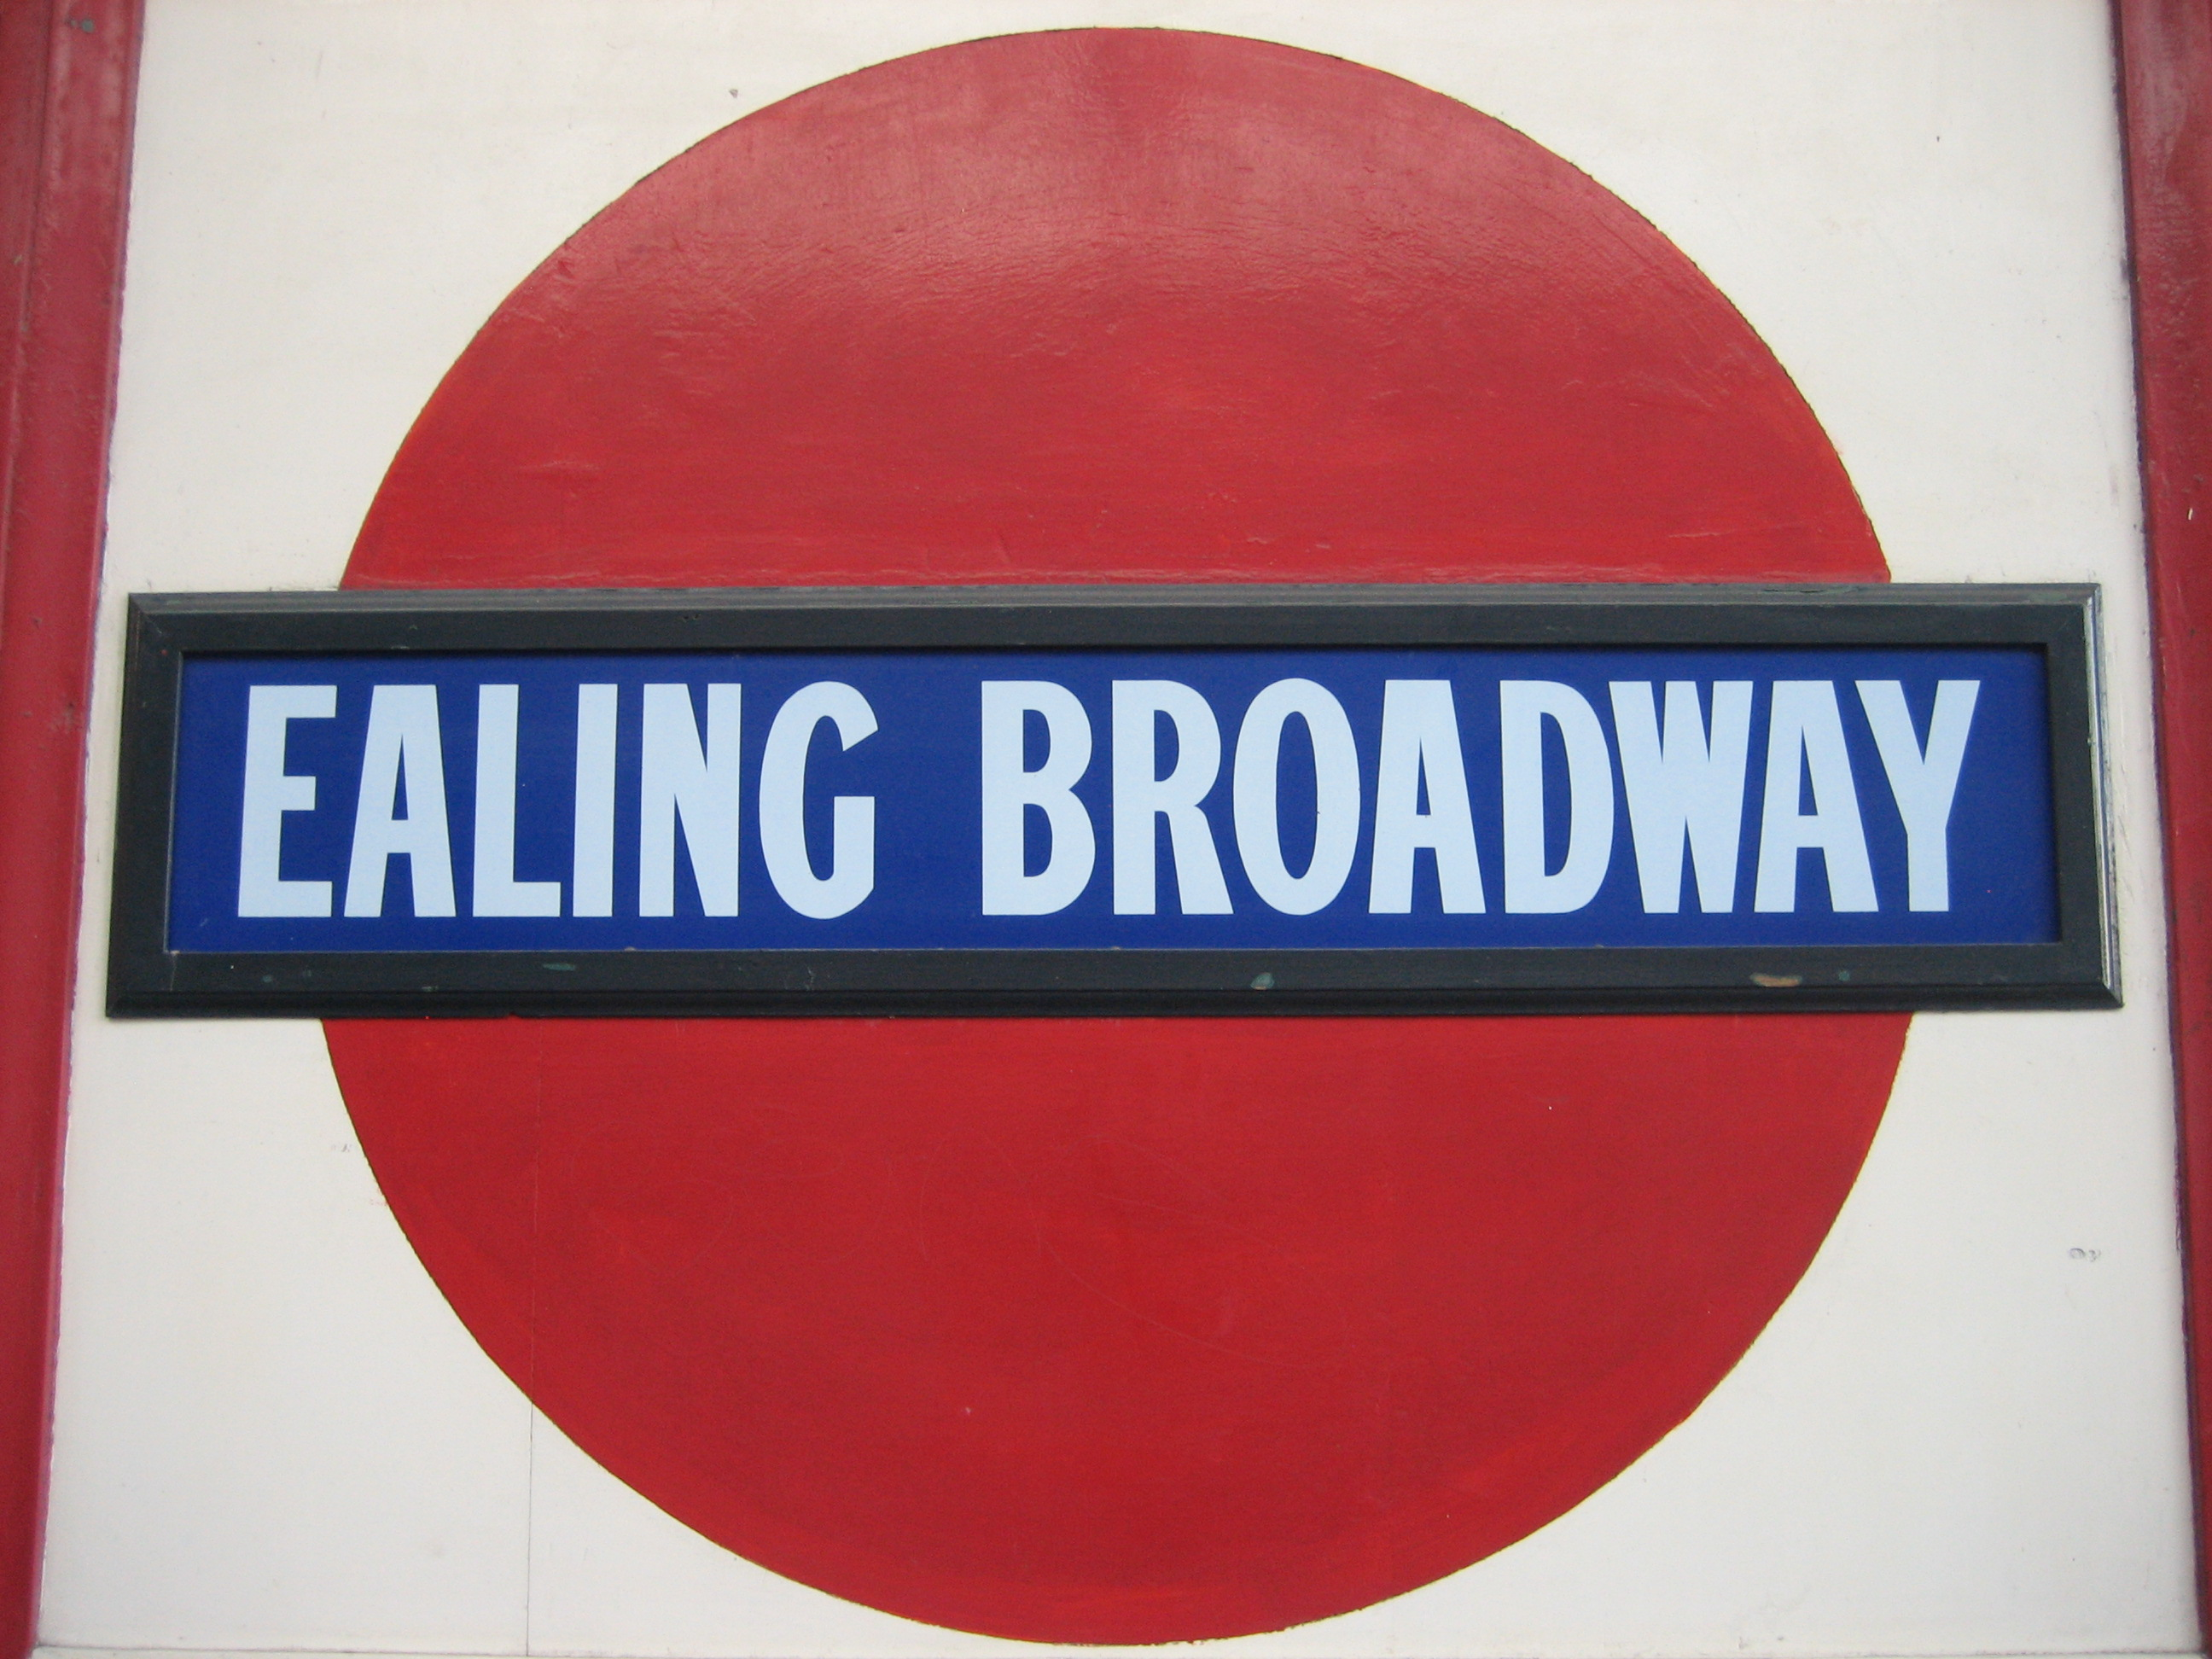 89 The old roundels at Ealing Broadway  150 great things about